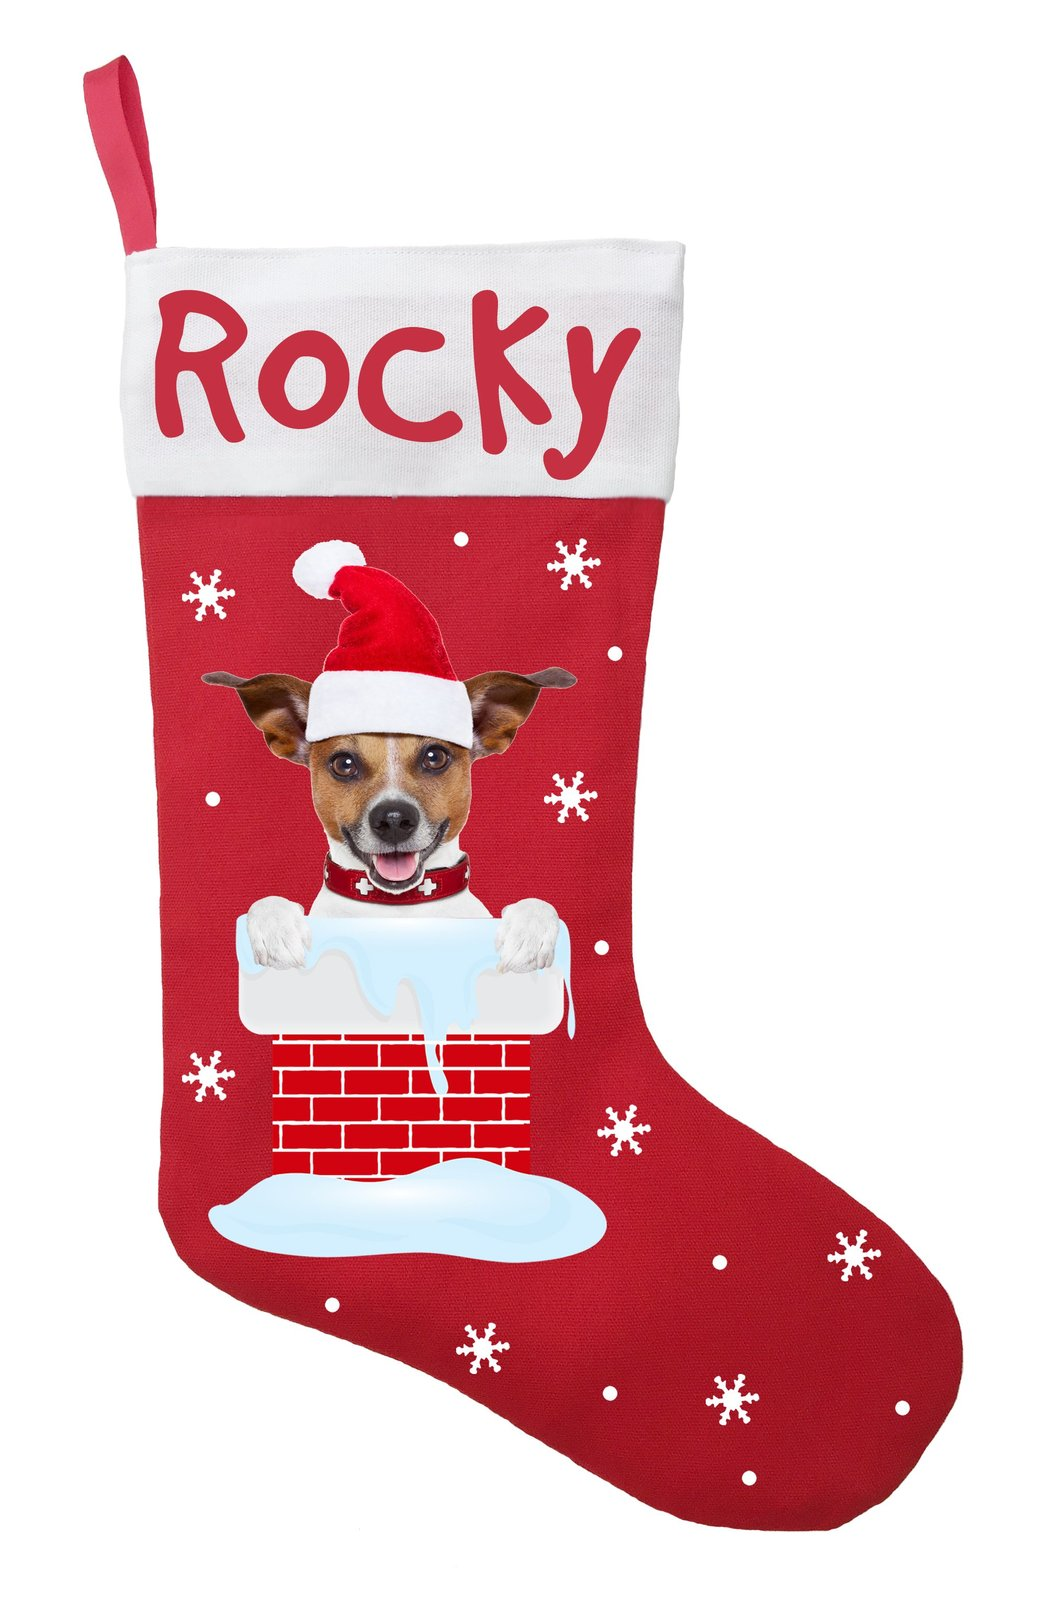 Jack Russell Terrier Christmas Stocking-Personalized Jack Russel Stocking - Red